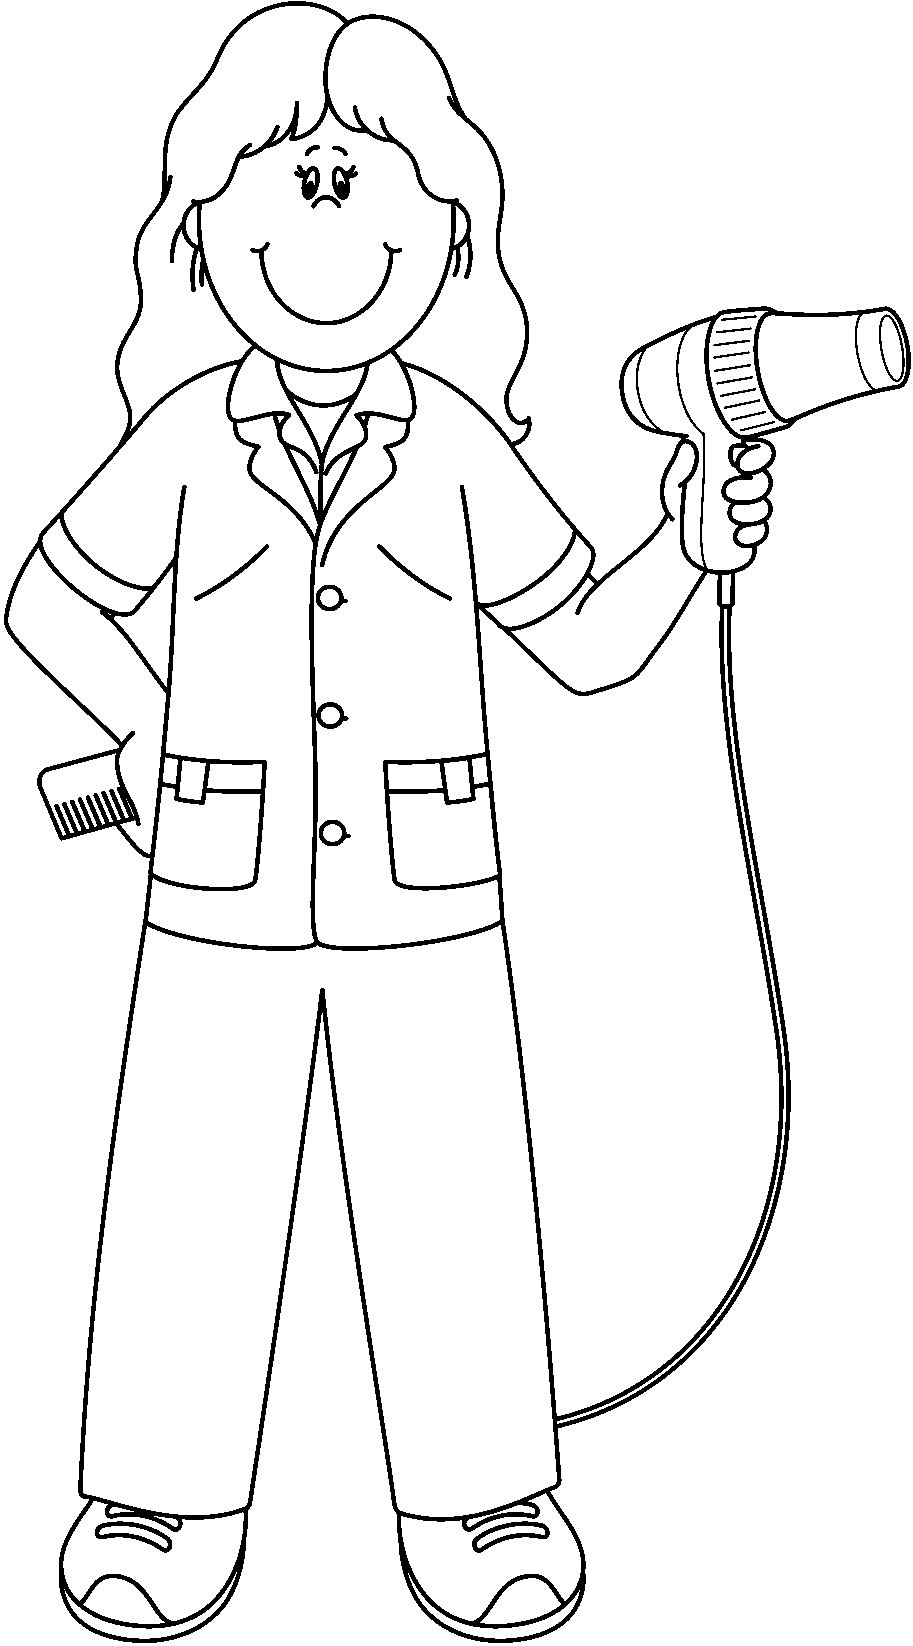 medium resolution of barber clipart community helper coloring pages jennymorgan me